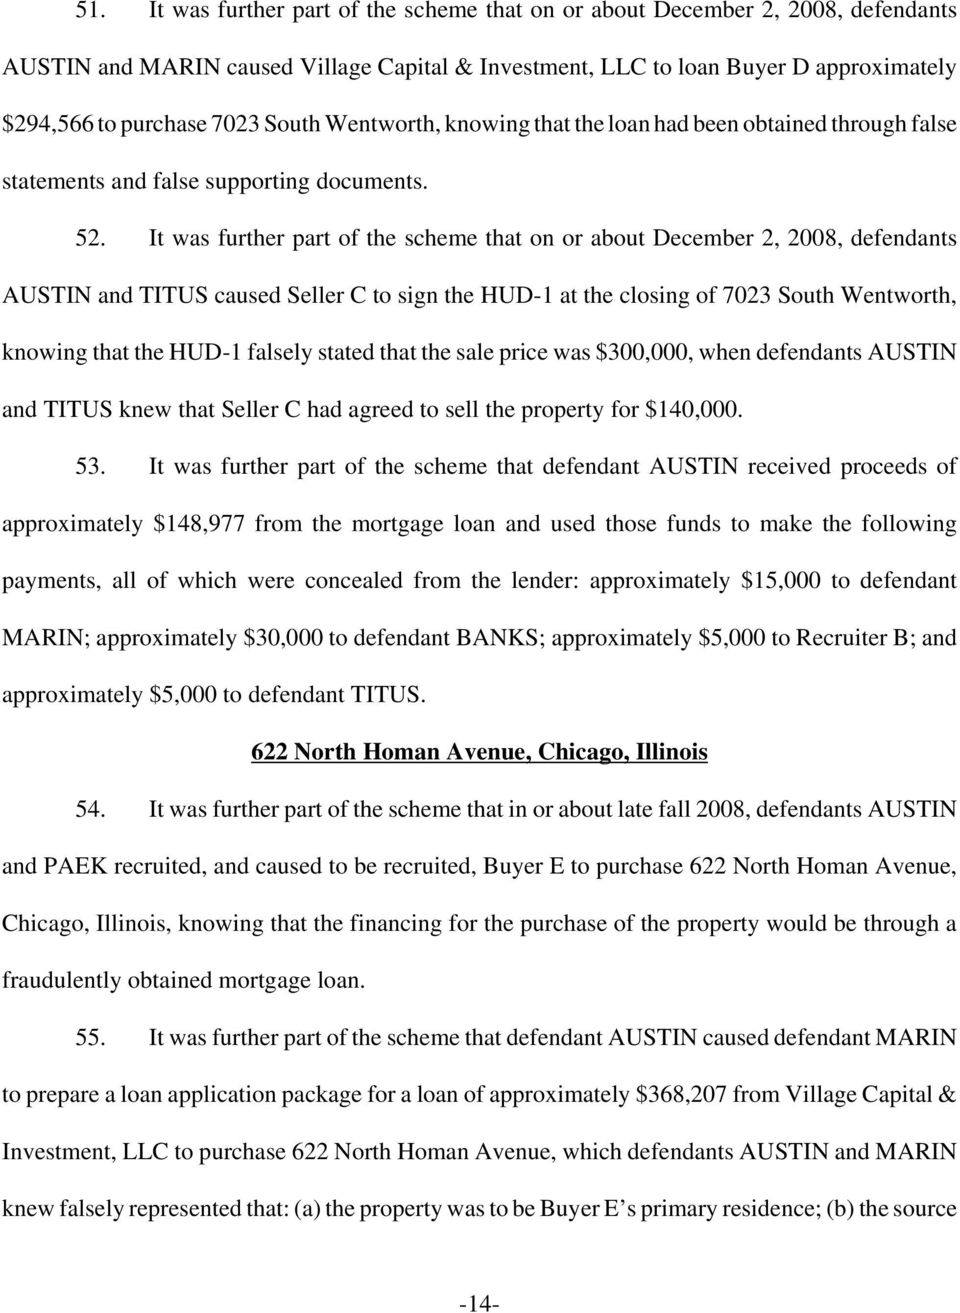 It was further part of the scheme that on or about December 2, 2008, defendants AUSTIN and TITUS caused Seller C to sign the HUD-1 at the closing of 7023 South Wentworth, knowing that the HUD-1